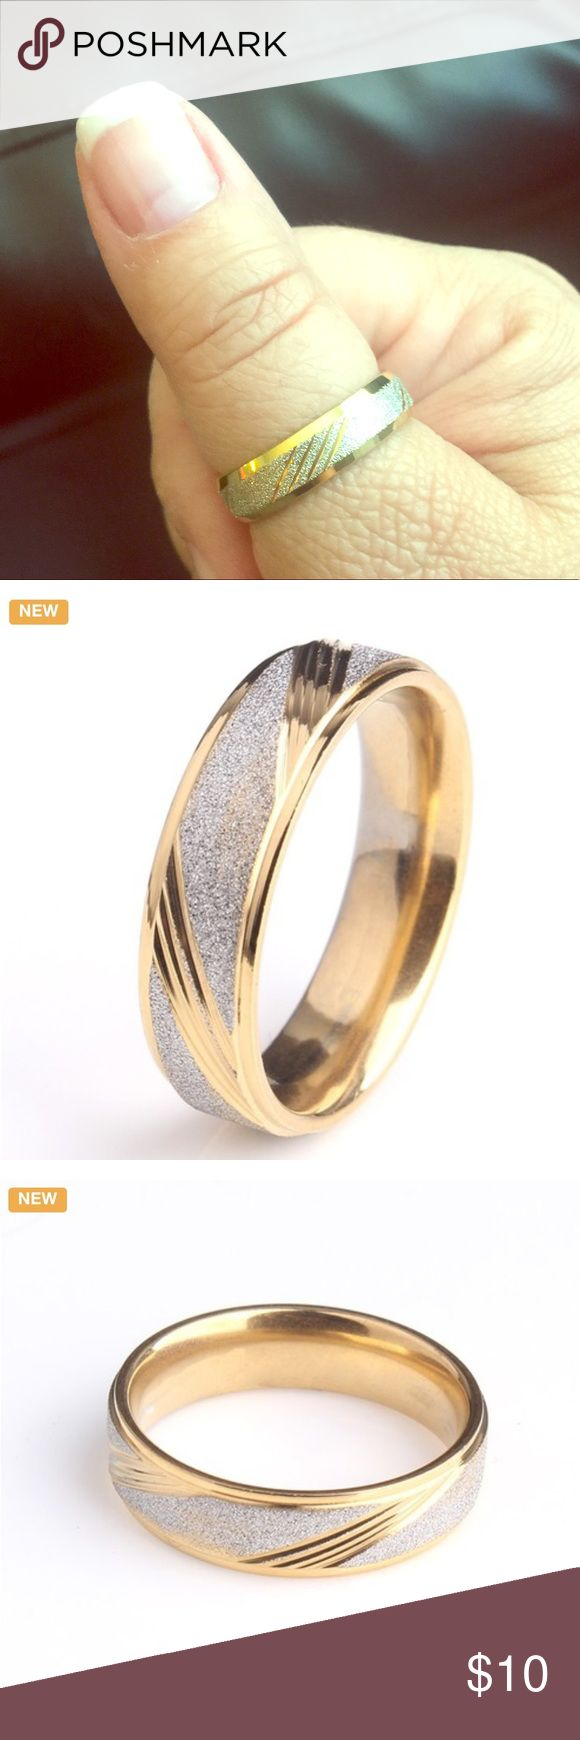 Brushed 316L Stainless Steel Gold Ring Band Brushed 316L Stainless Steel Matte Oblique Stripes - Stainless Steel is durable and will not turn your finger green - New! Accessories Jewelry